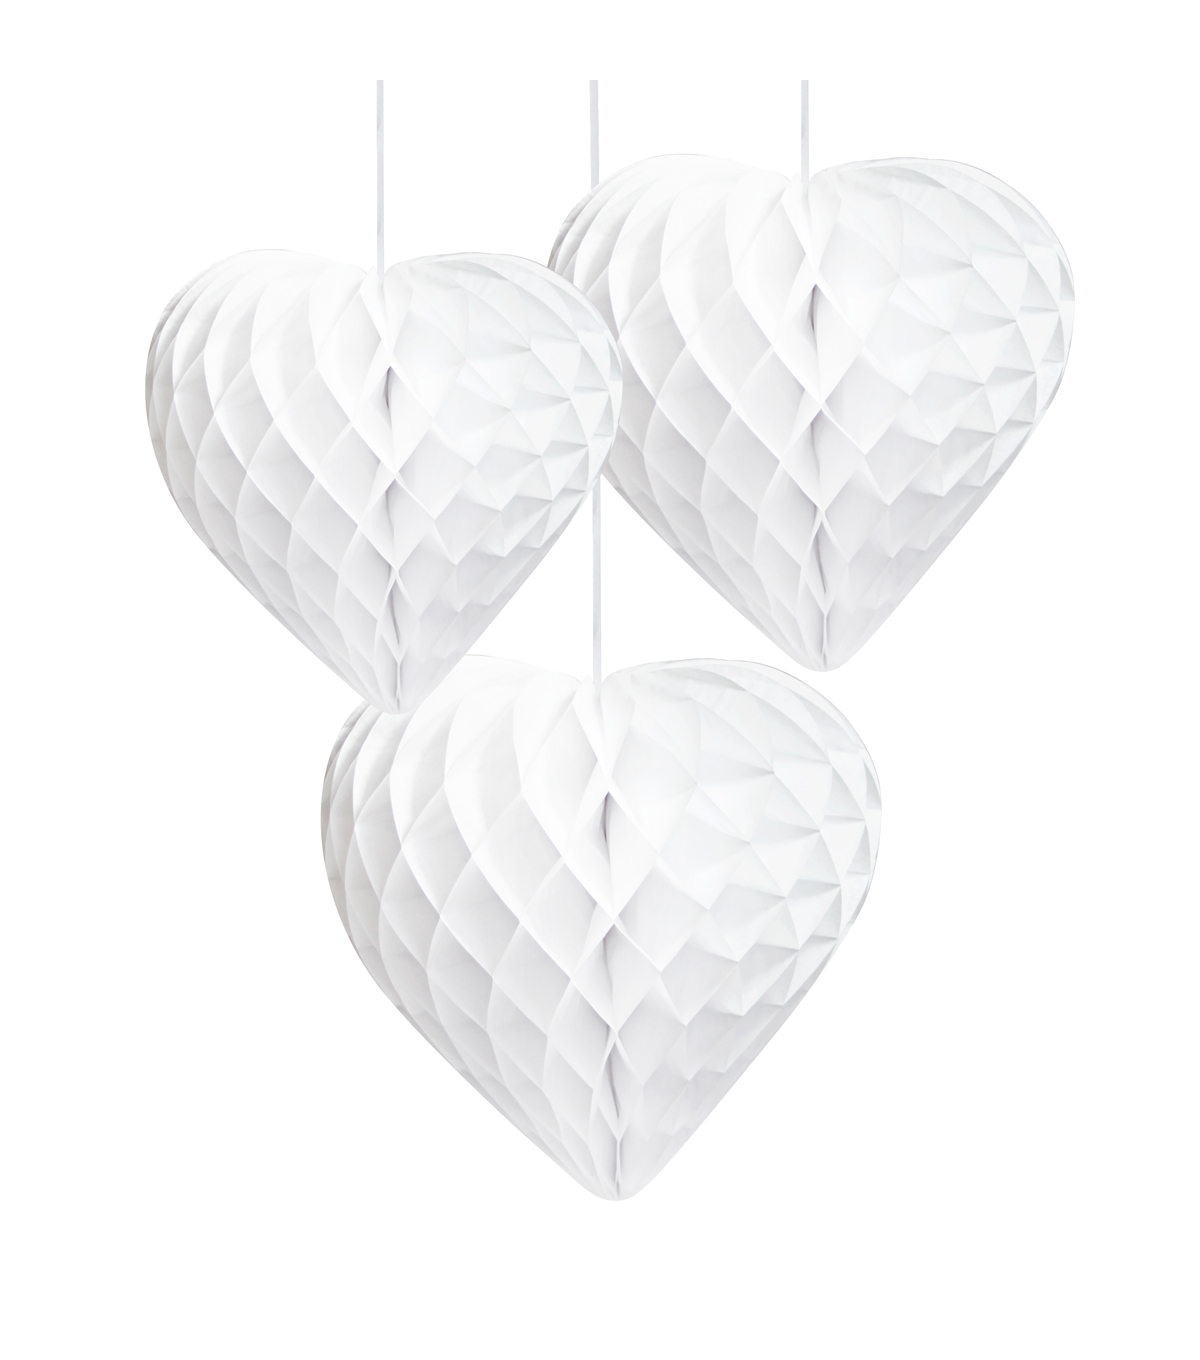 Decadent Decs White Honeycomb Hearts 3pk